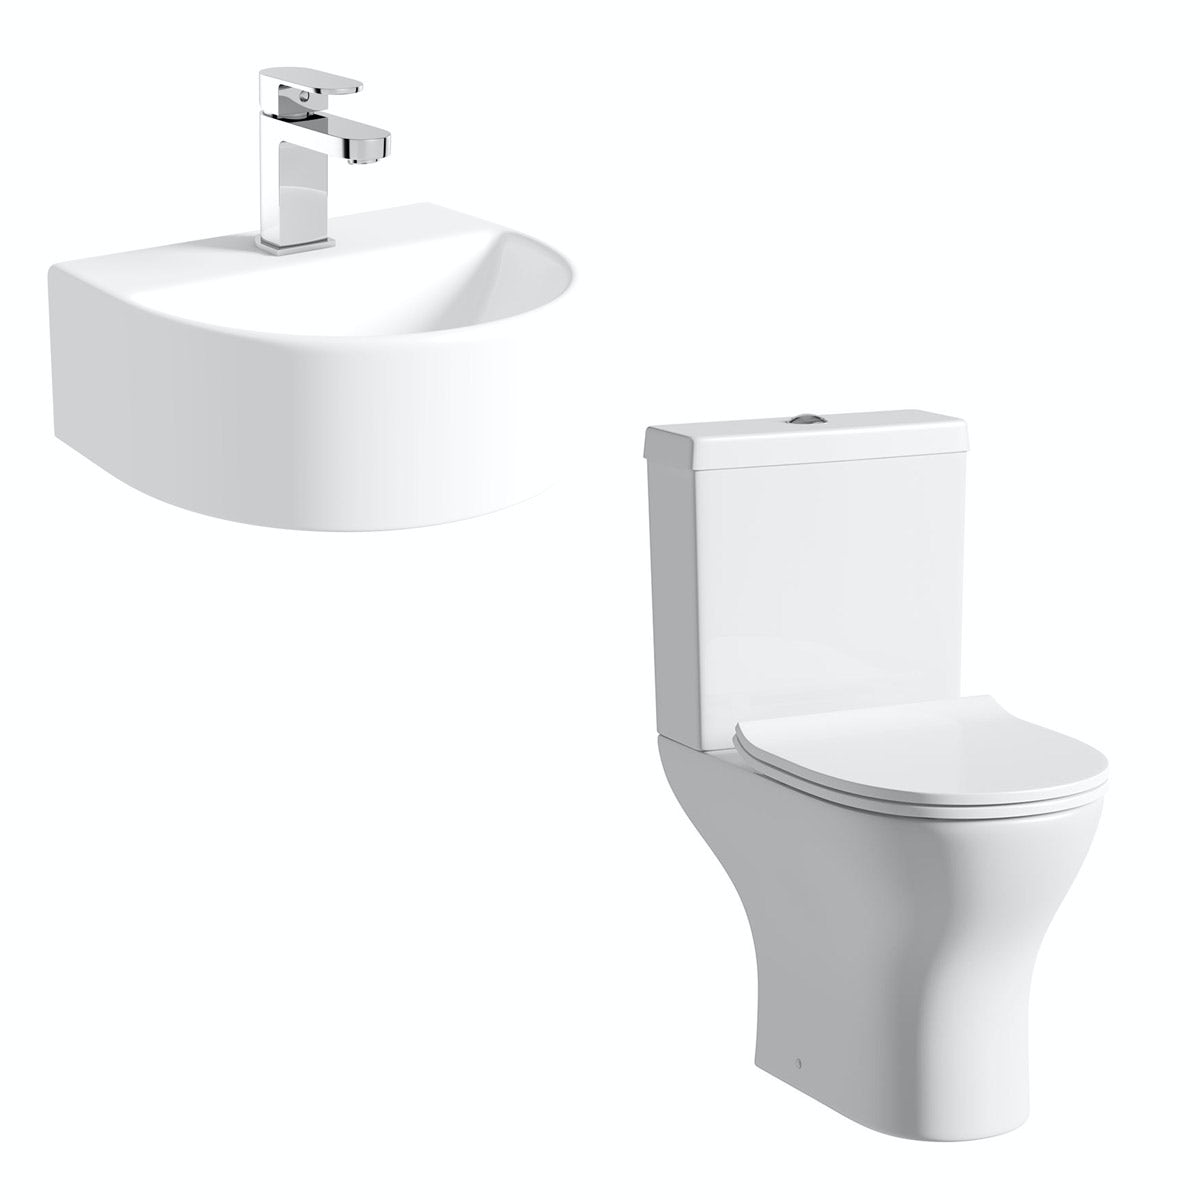 Compact Round close coupled toilet and Pichola wall hung basin set